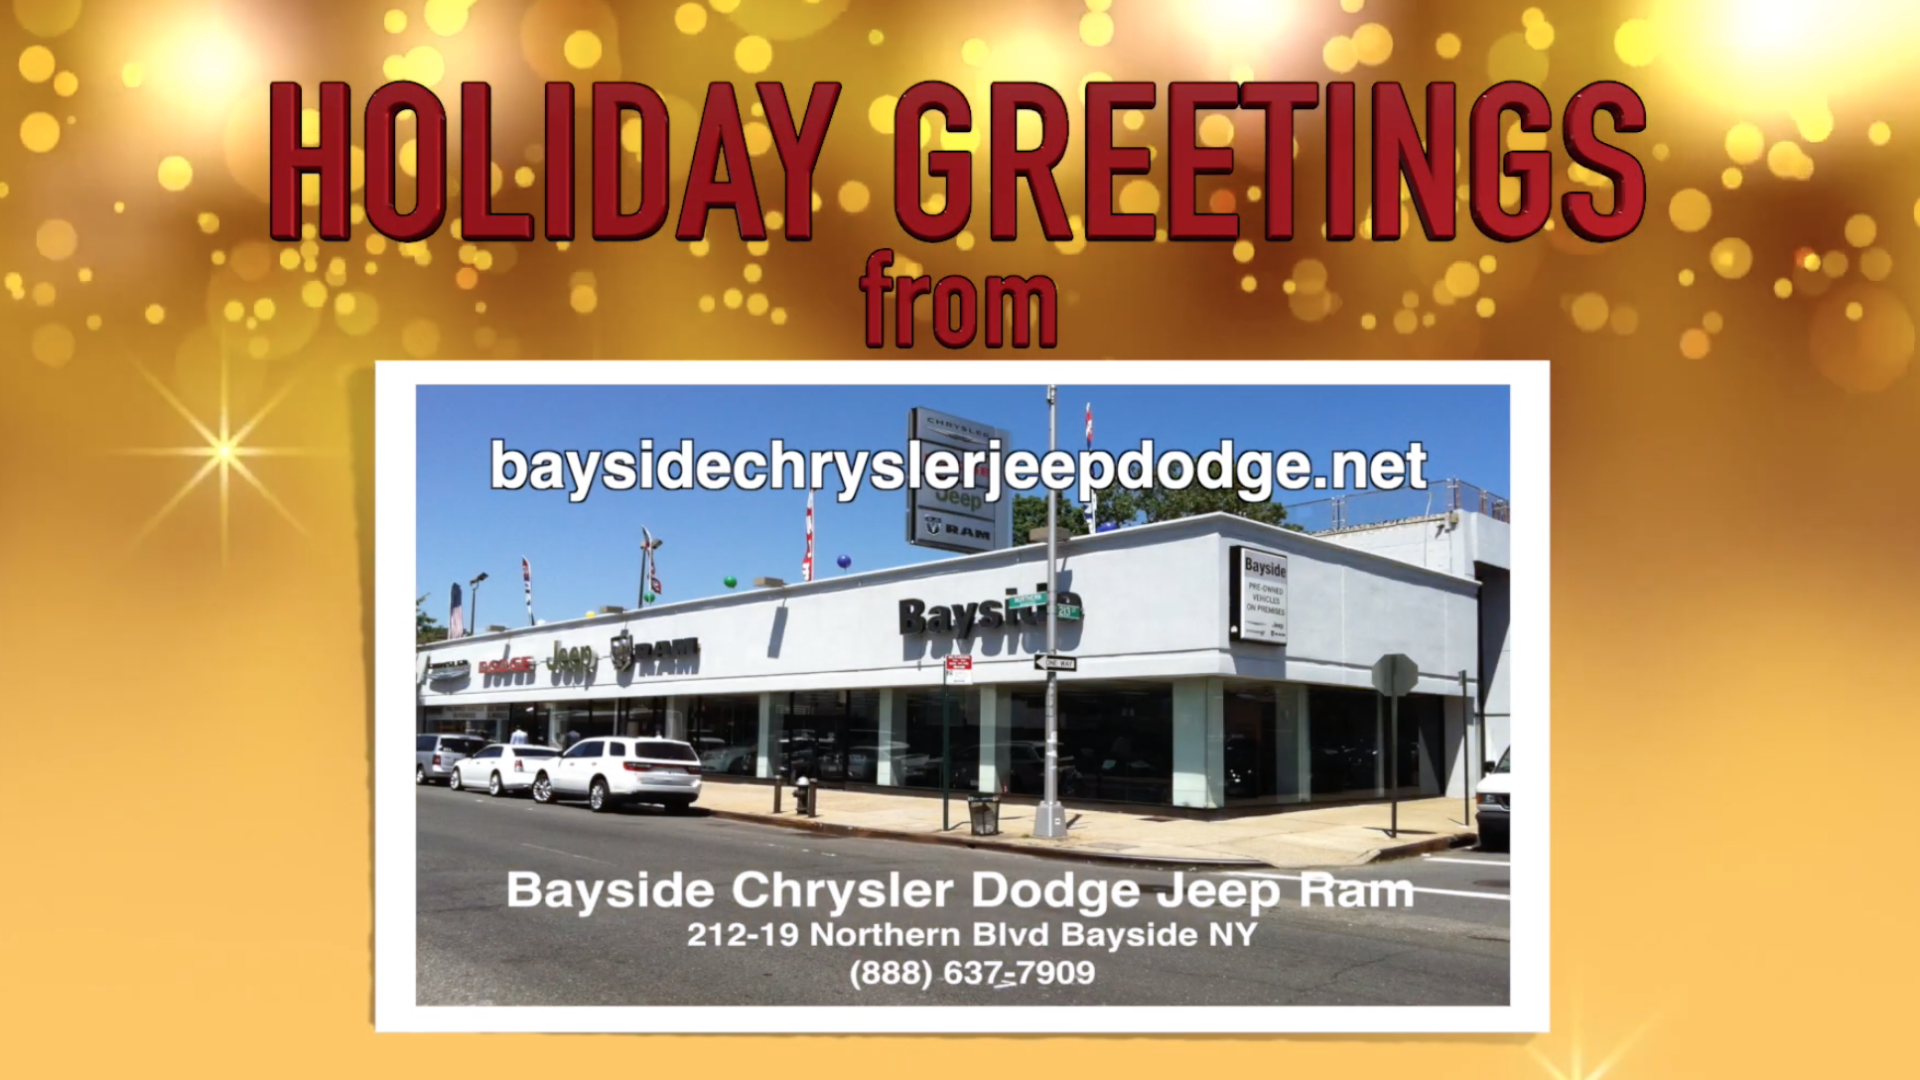 Bayside Chrysler Holiday Greetings